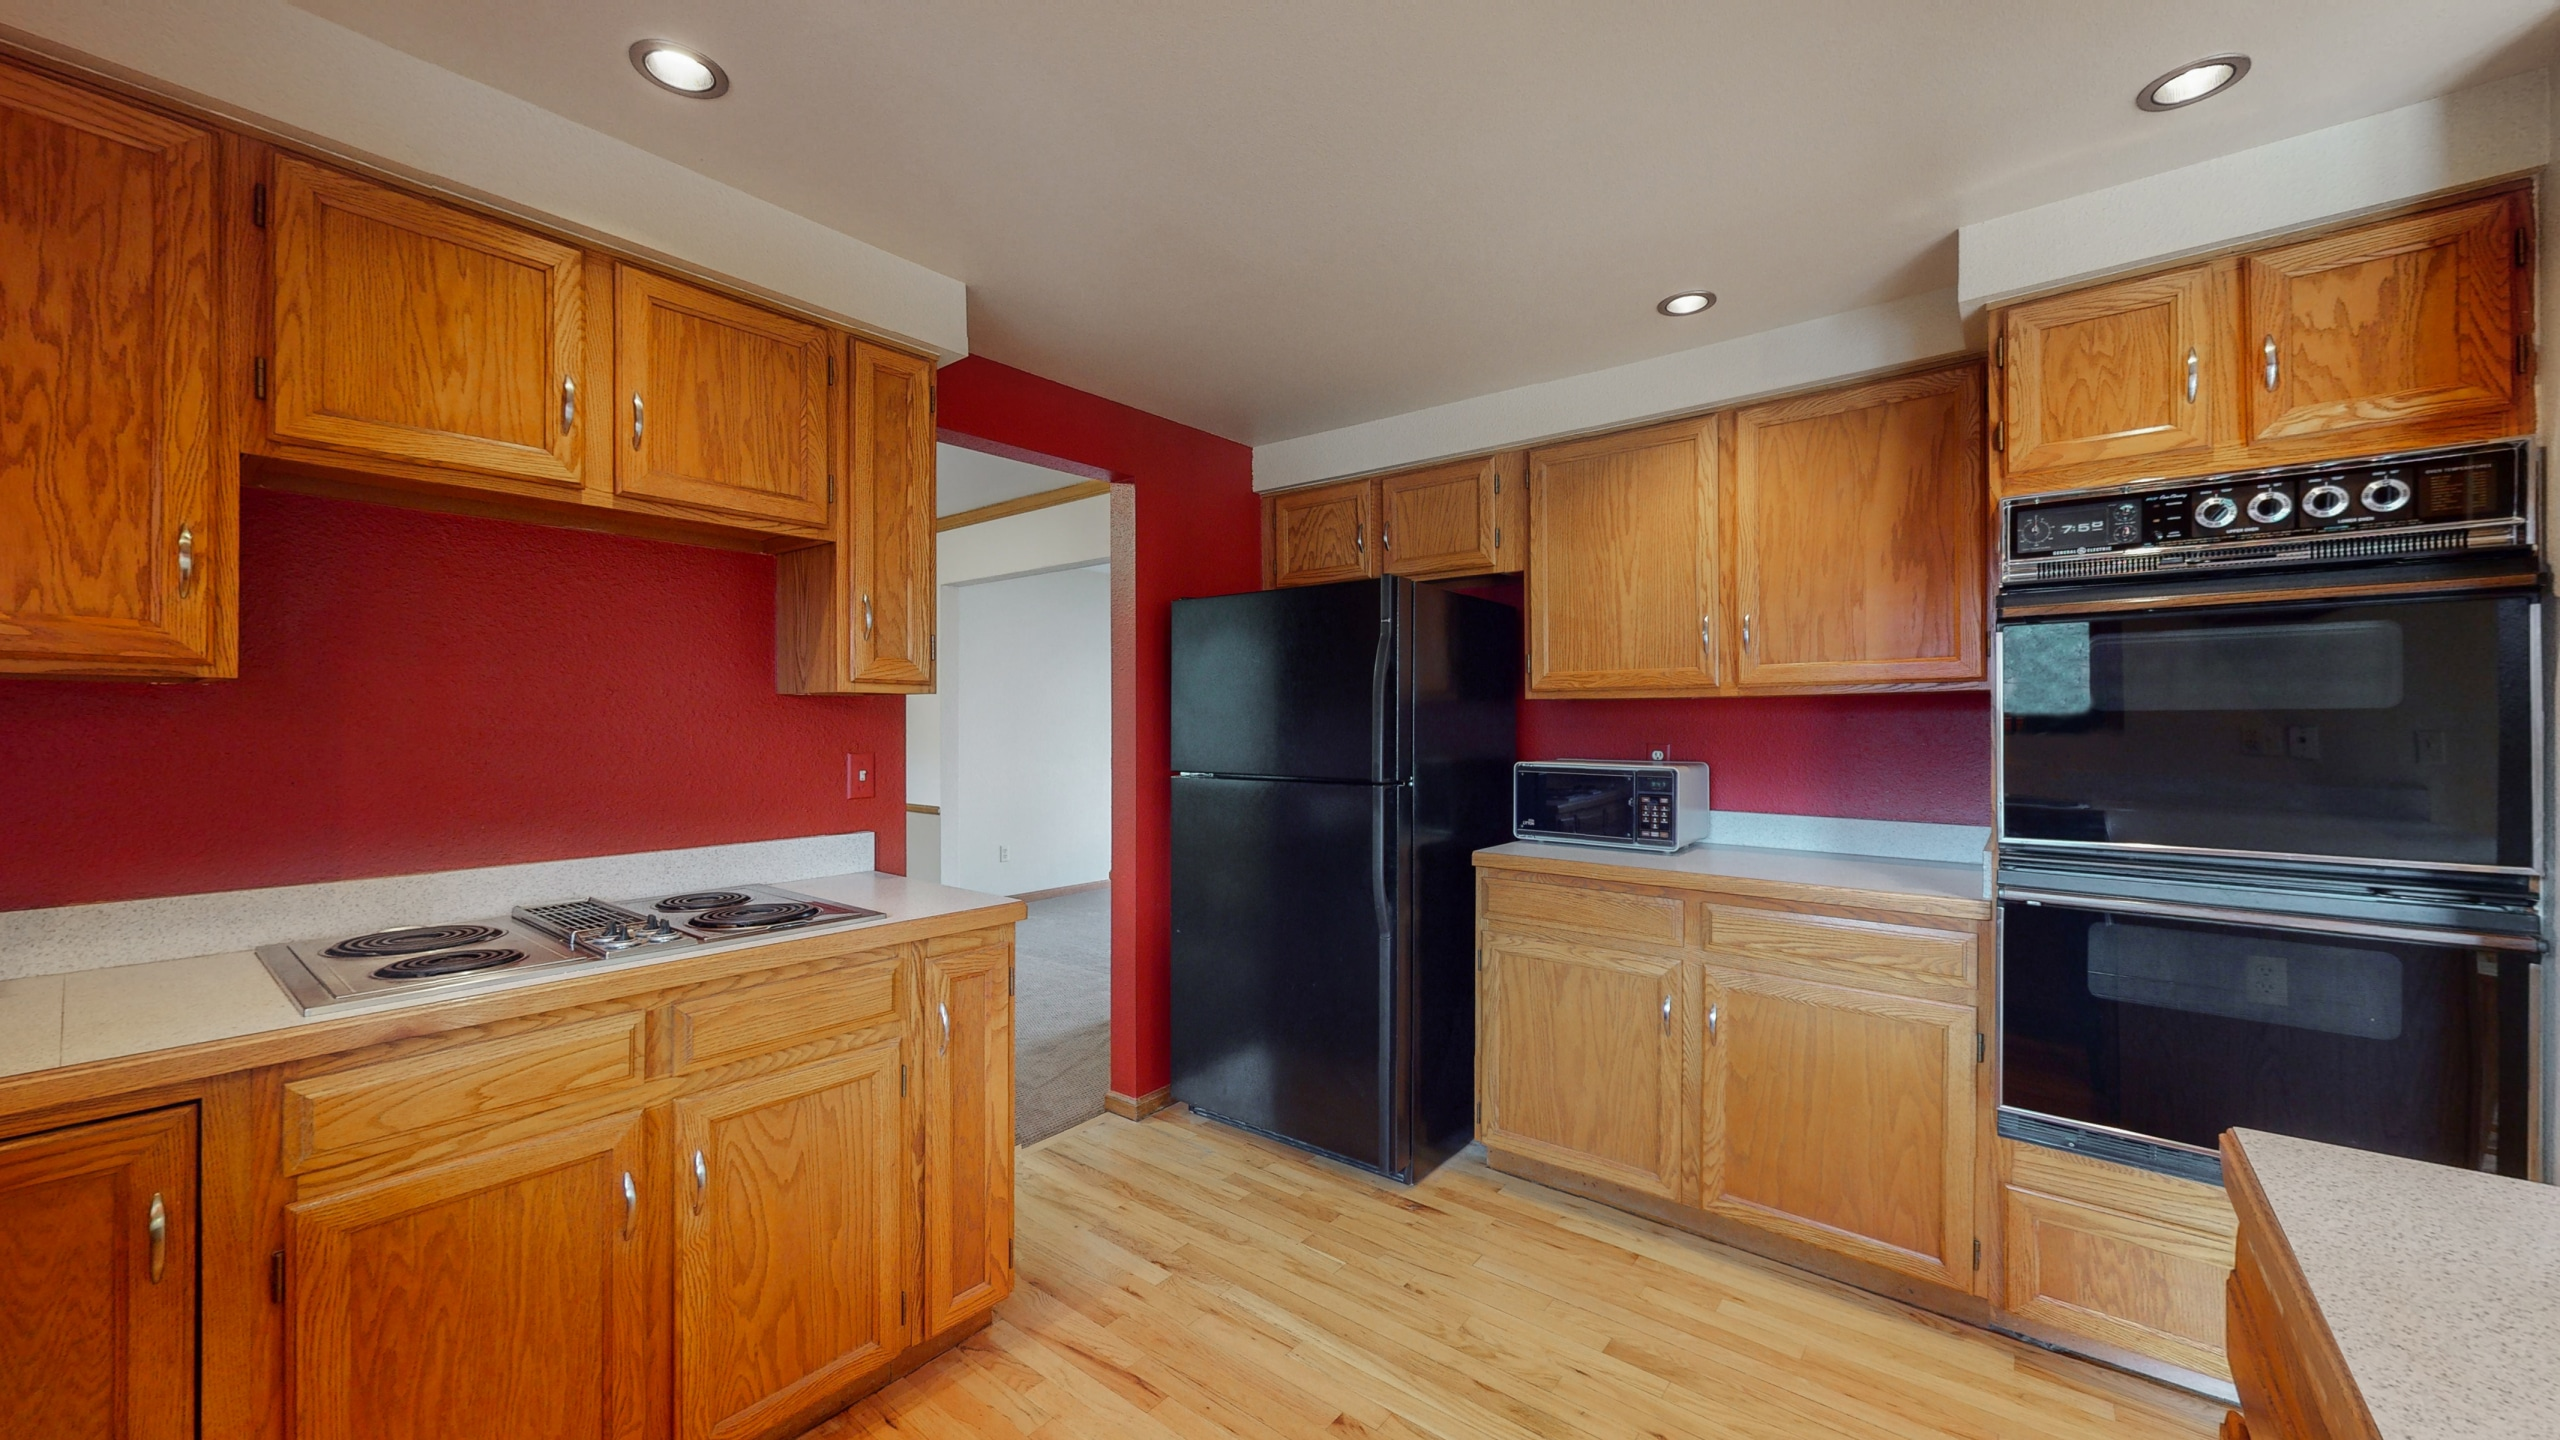 Centennial Colorado home for sale with large double oven, oak cabinets